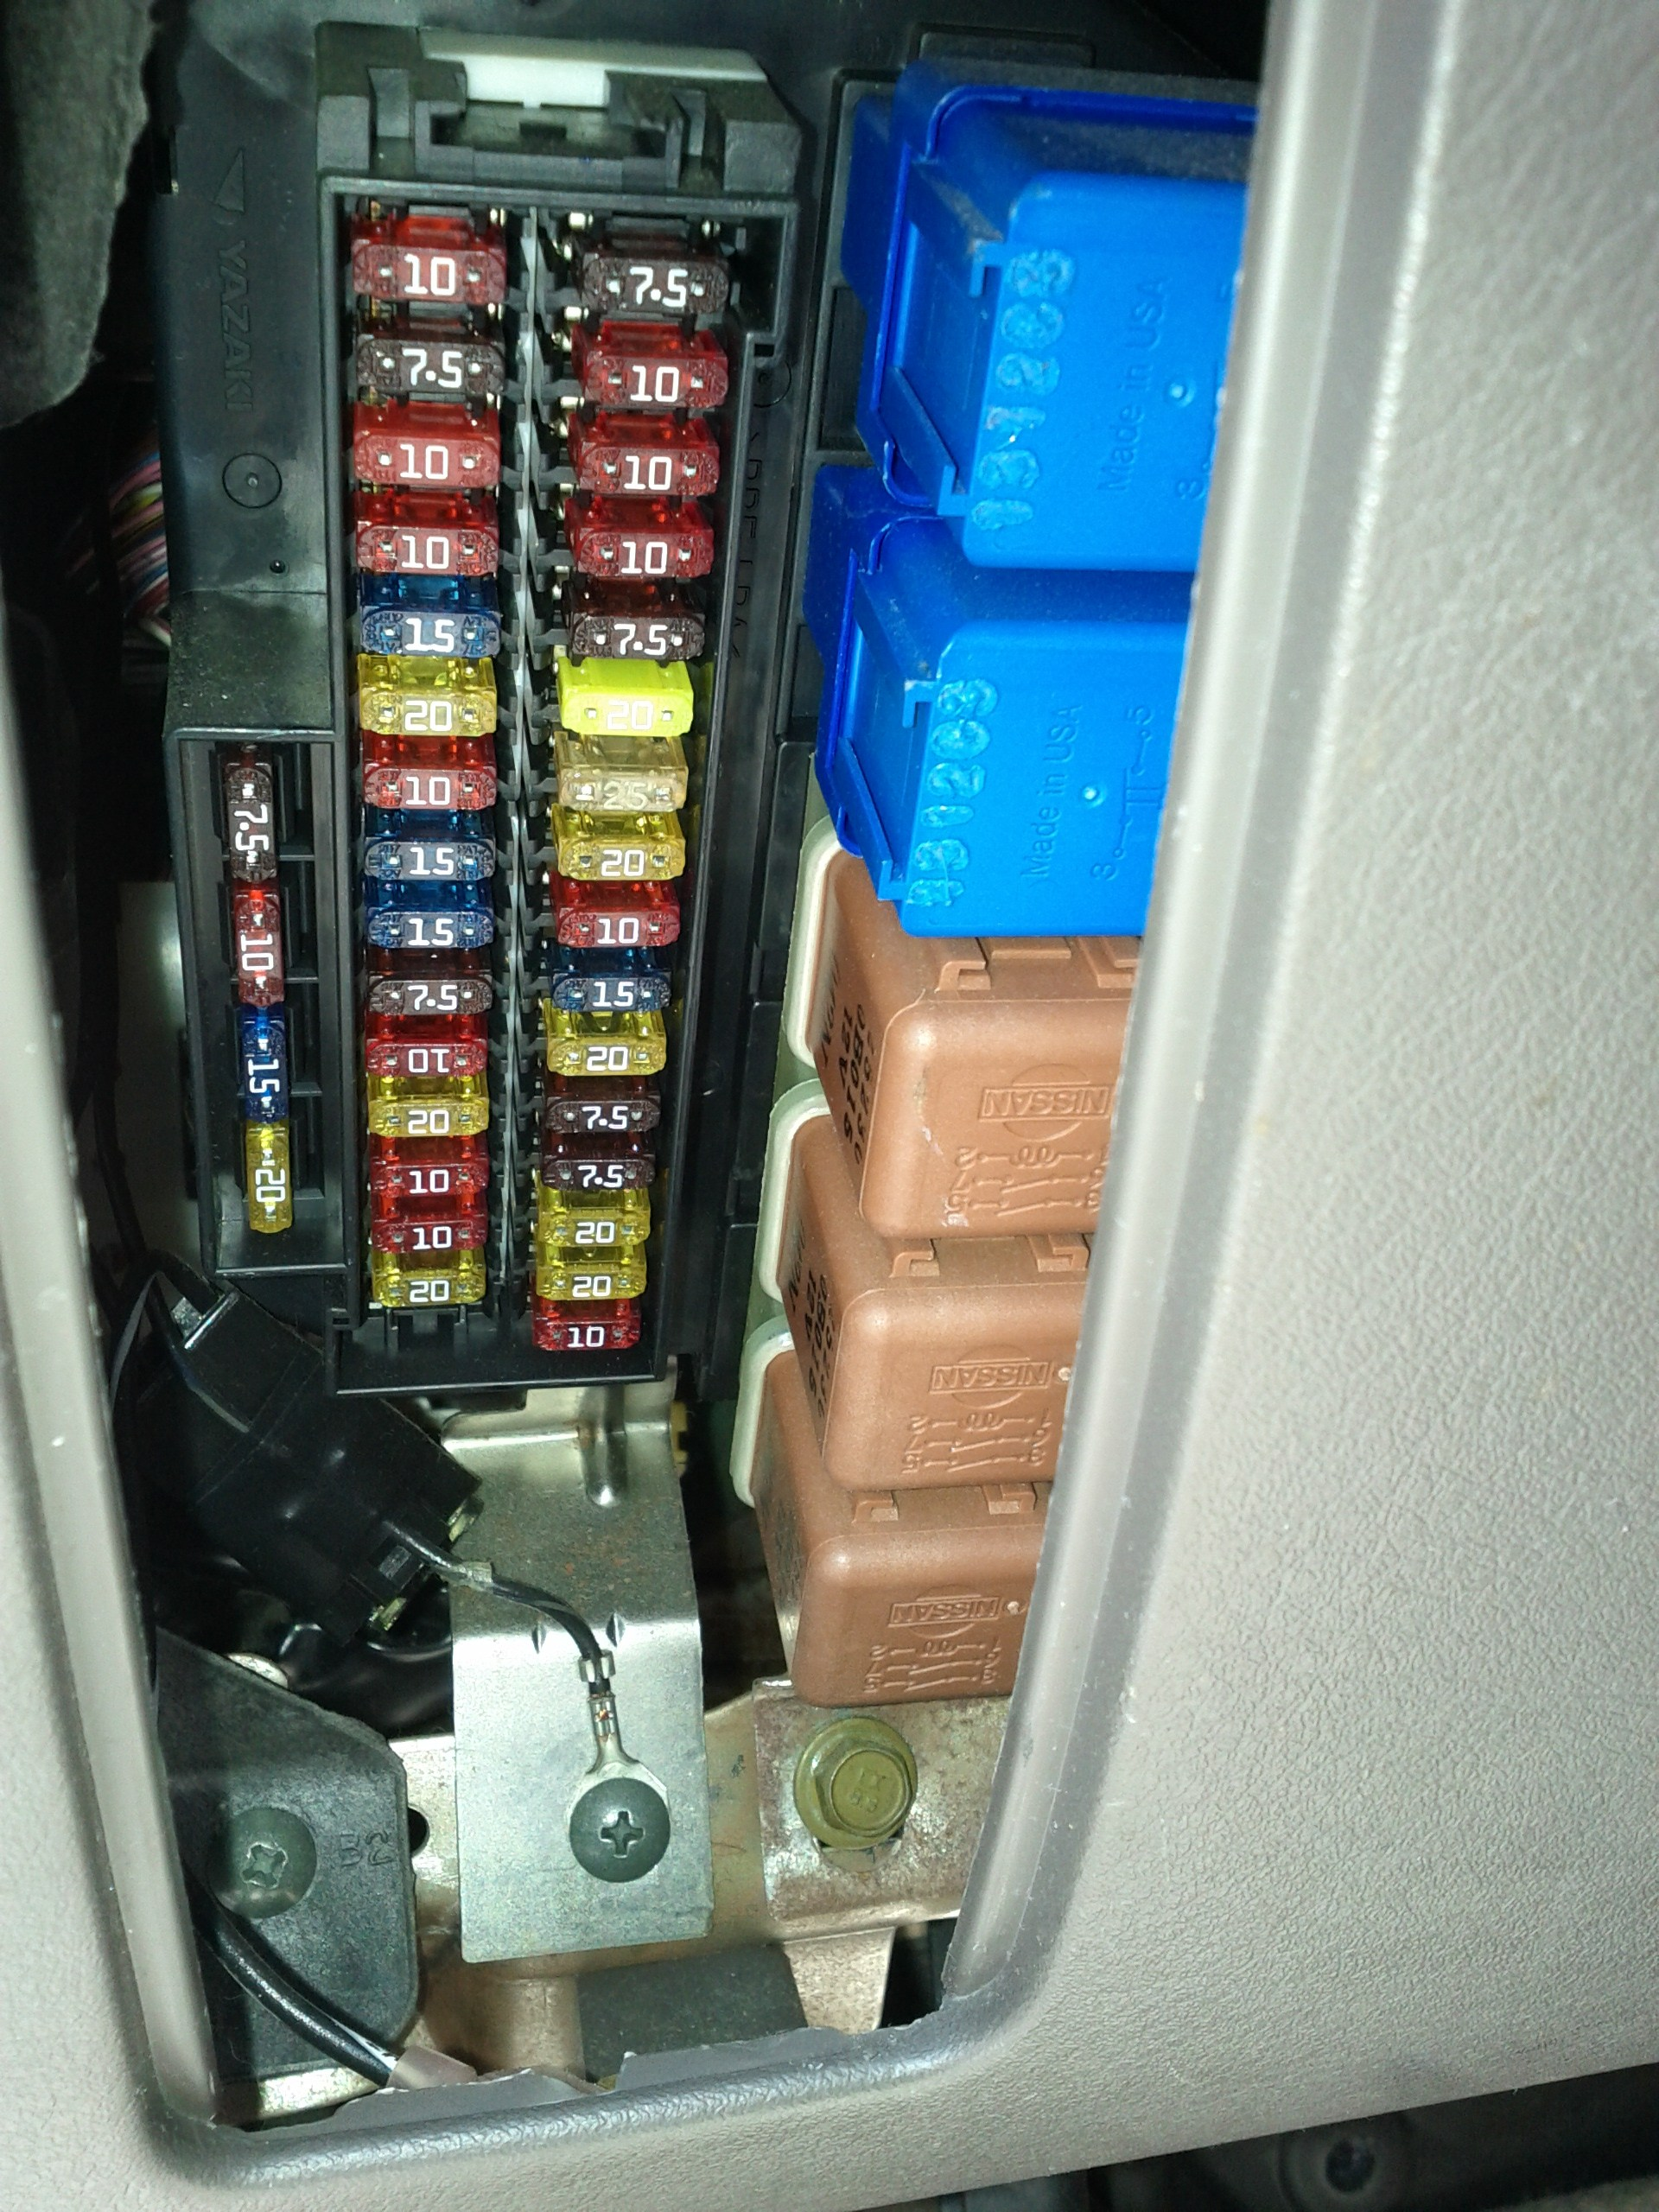 2000 nissan sentra fuse box diagram wiring ford f150 2004 flasher relay location get